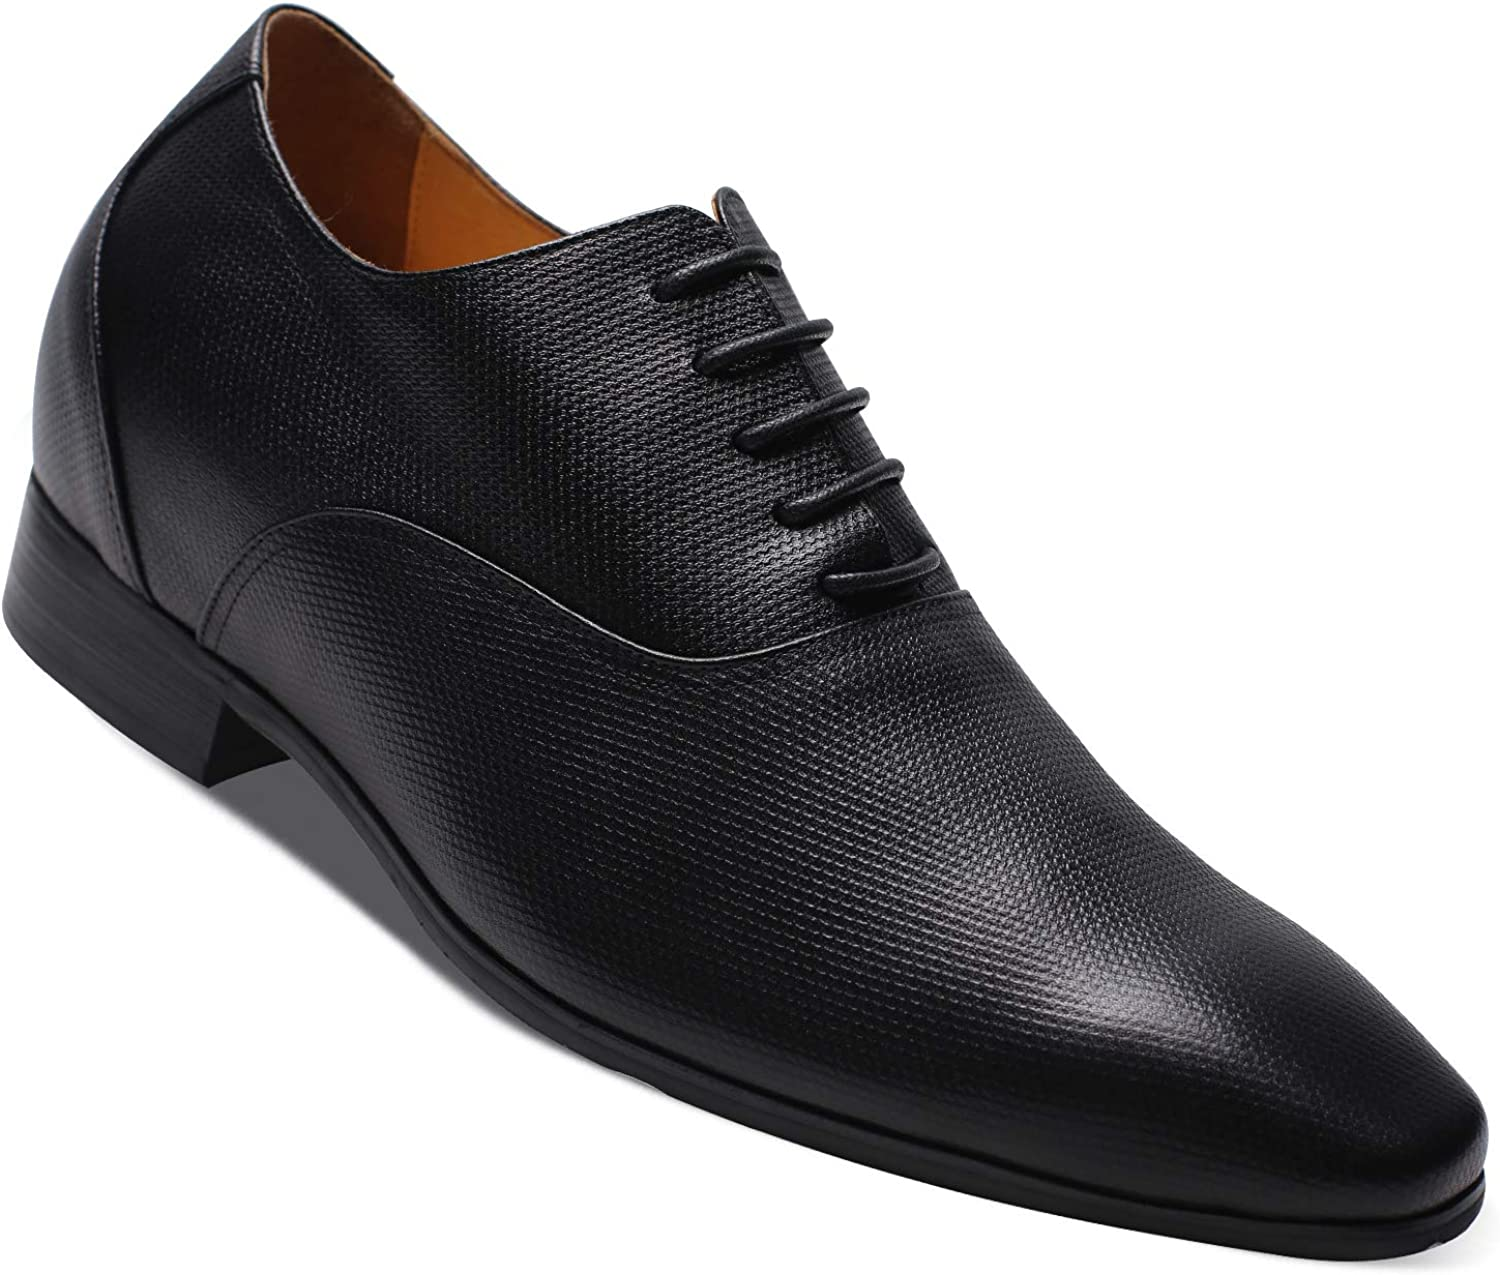 CHAMARIPA Mens Invisible Height Increasing Elevator Shoes-Black Genuine Leather Formal Oxford Dress Shoes 2.96 Inches Taller